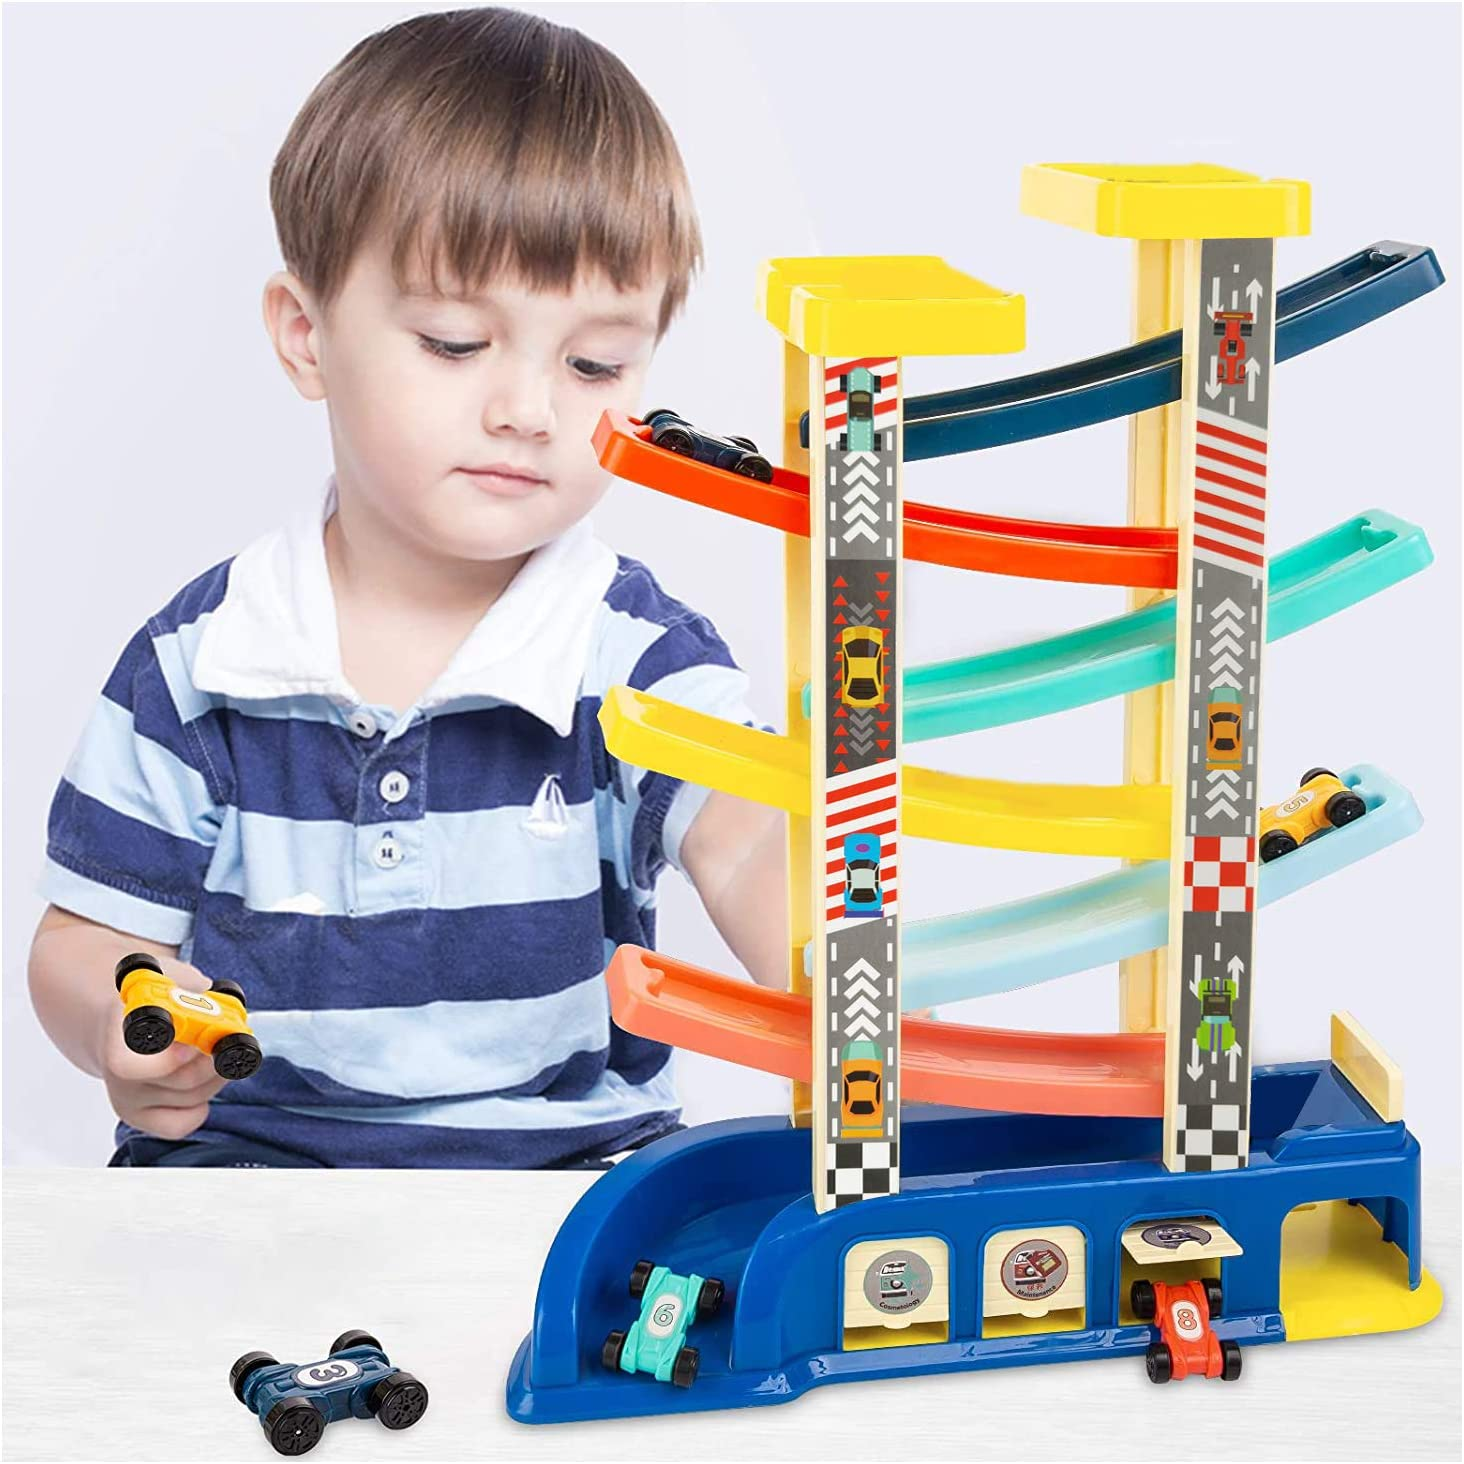 Car Ramp Racer Toy Vehicle Set with 6 Cars YUEPEACO Toddler Toys Race Track Preschool Educational Toy Car Track Playsets Gifts for 1 2 3 Year Old Kids Toddler Boy and Girls